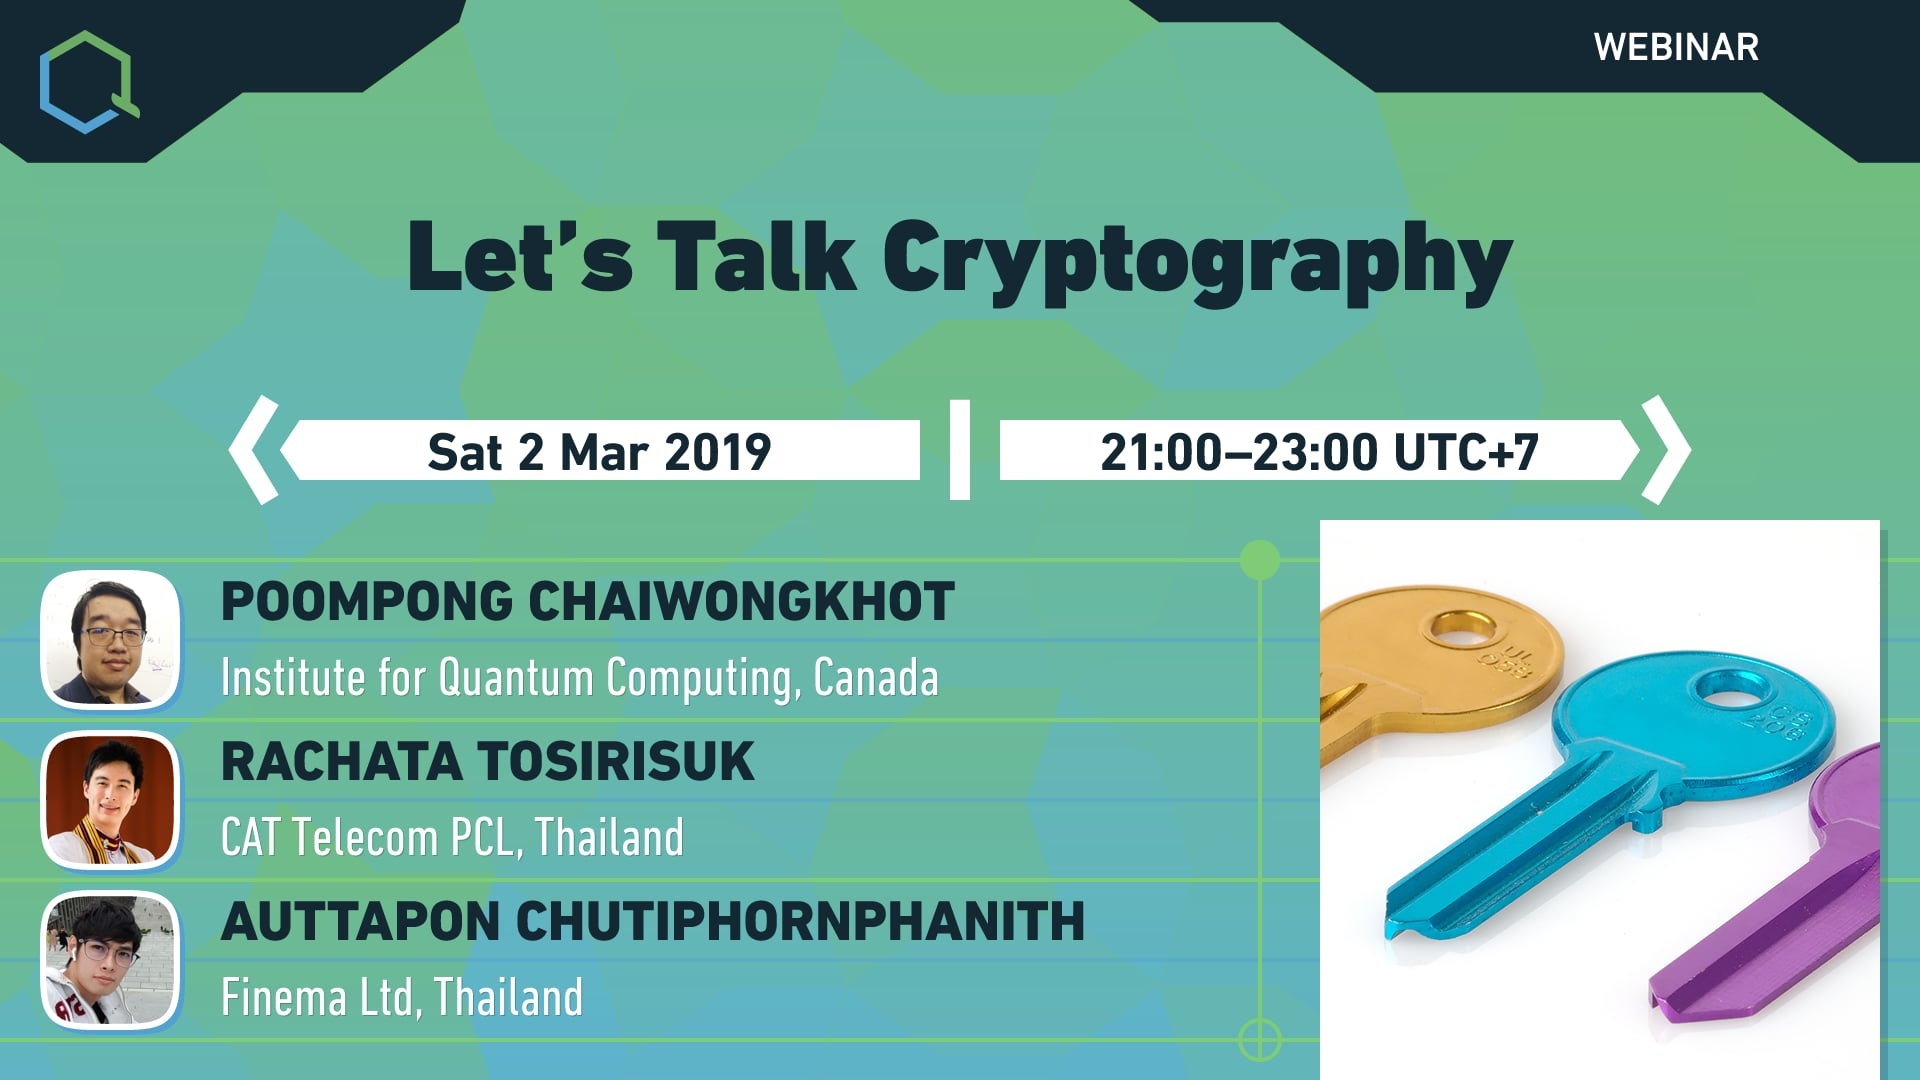 Let's Talk Cryptography